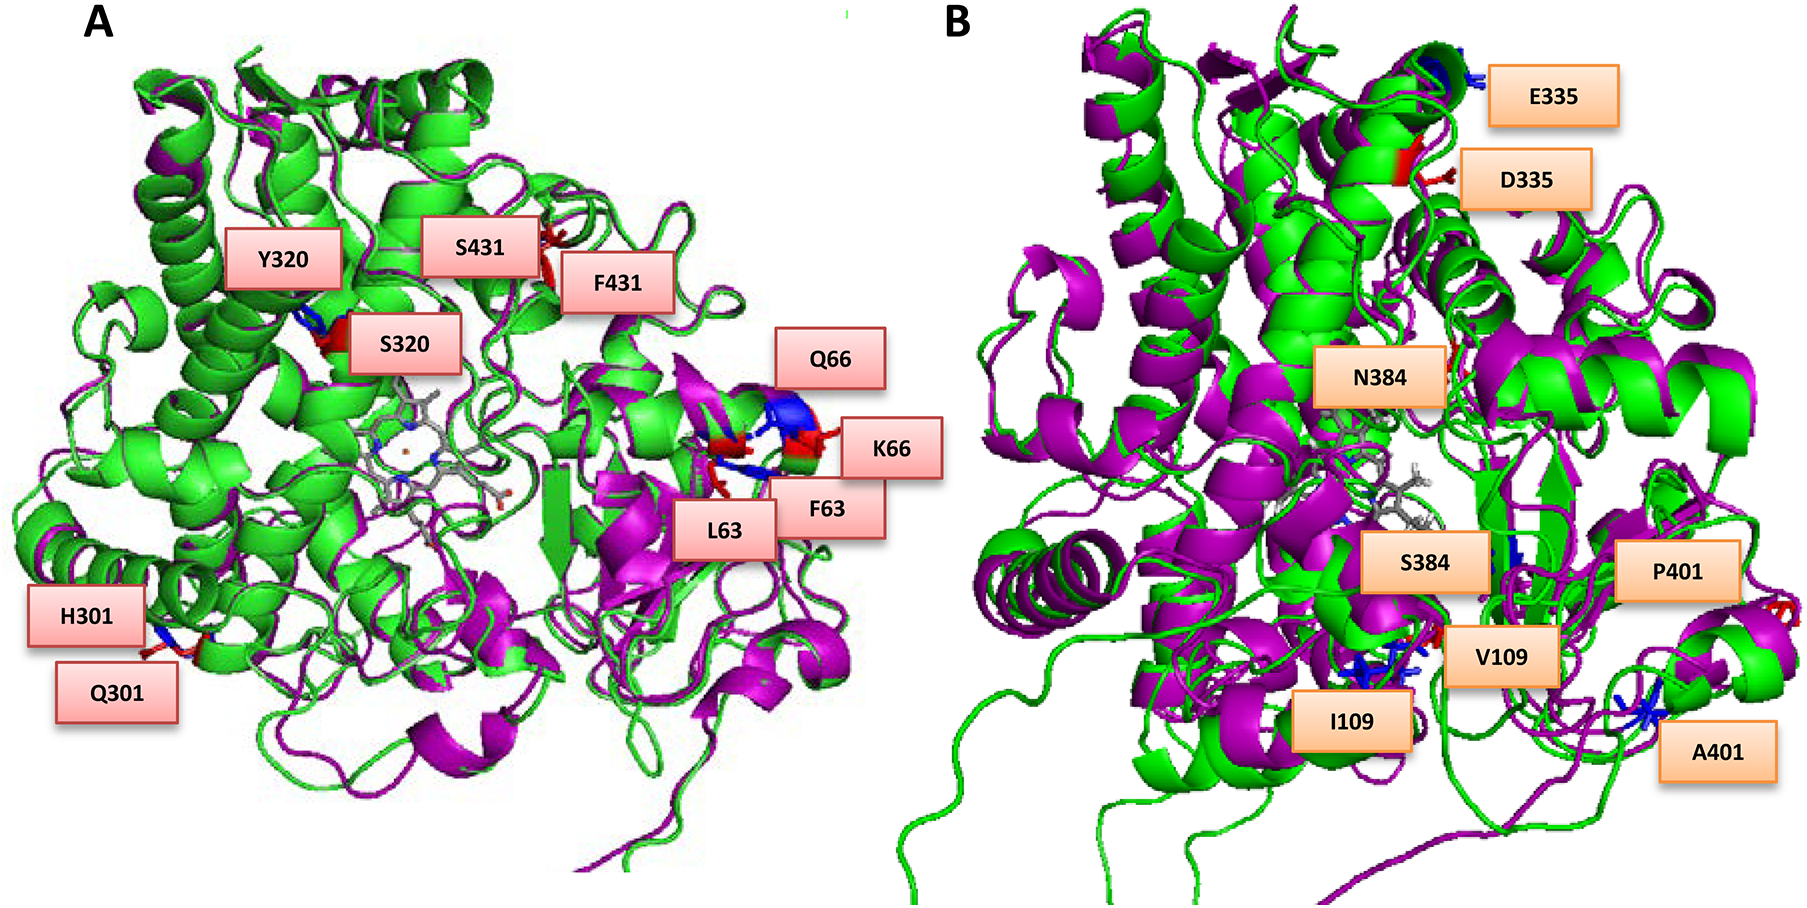 Overlay of (A) MALCYP6P9a (green helices) and FANGCYP6P9a (purple helices) and (B) MALCYP6P9b (green helices) and FANGCYP6P9b (purple helices) showing amino acid residues changes.